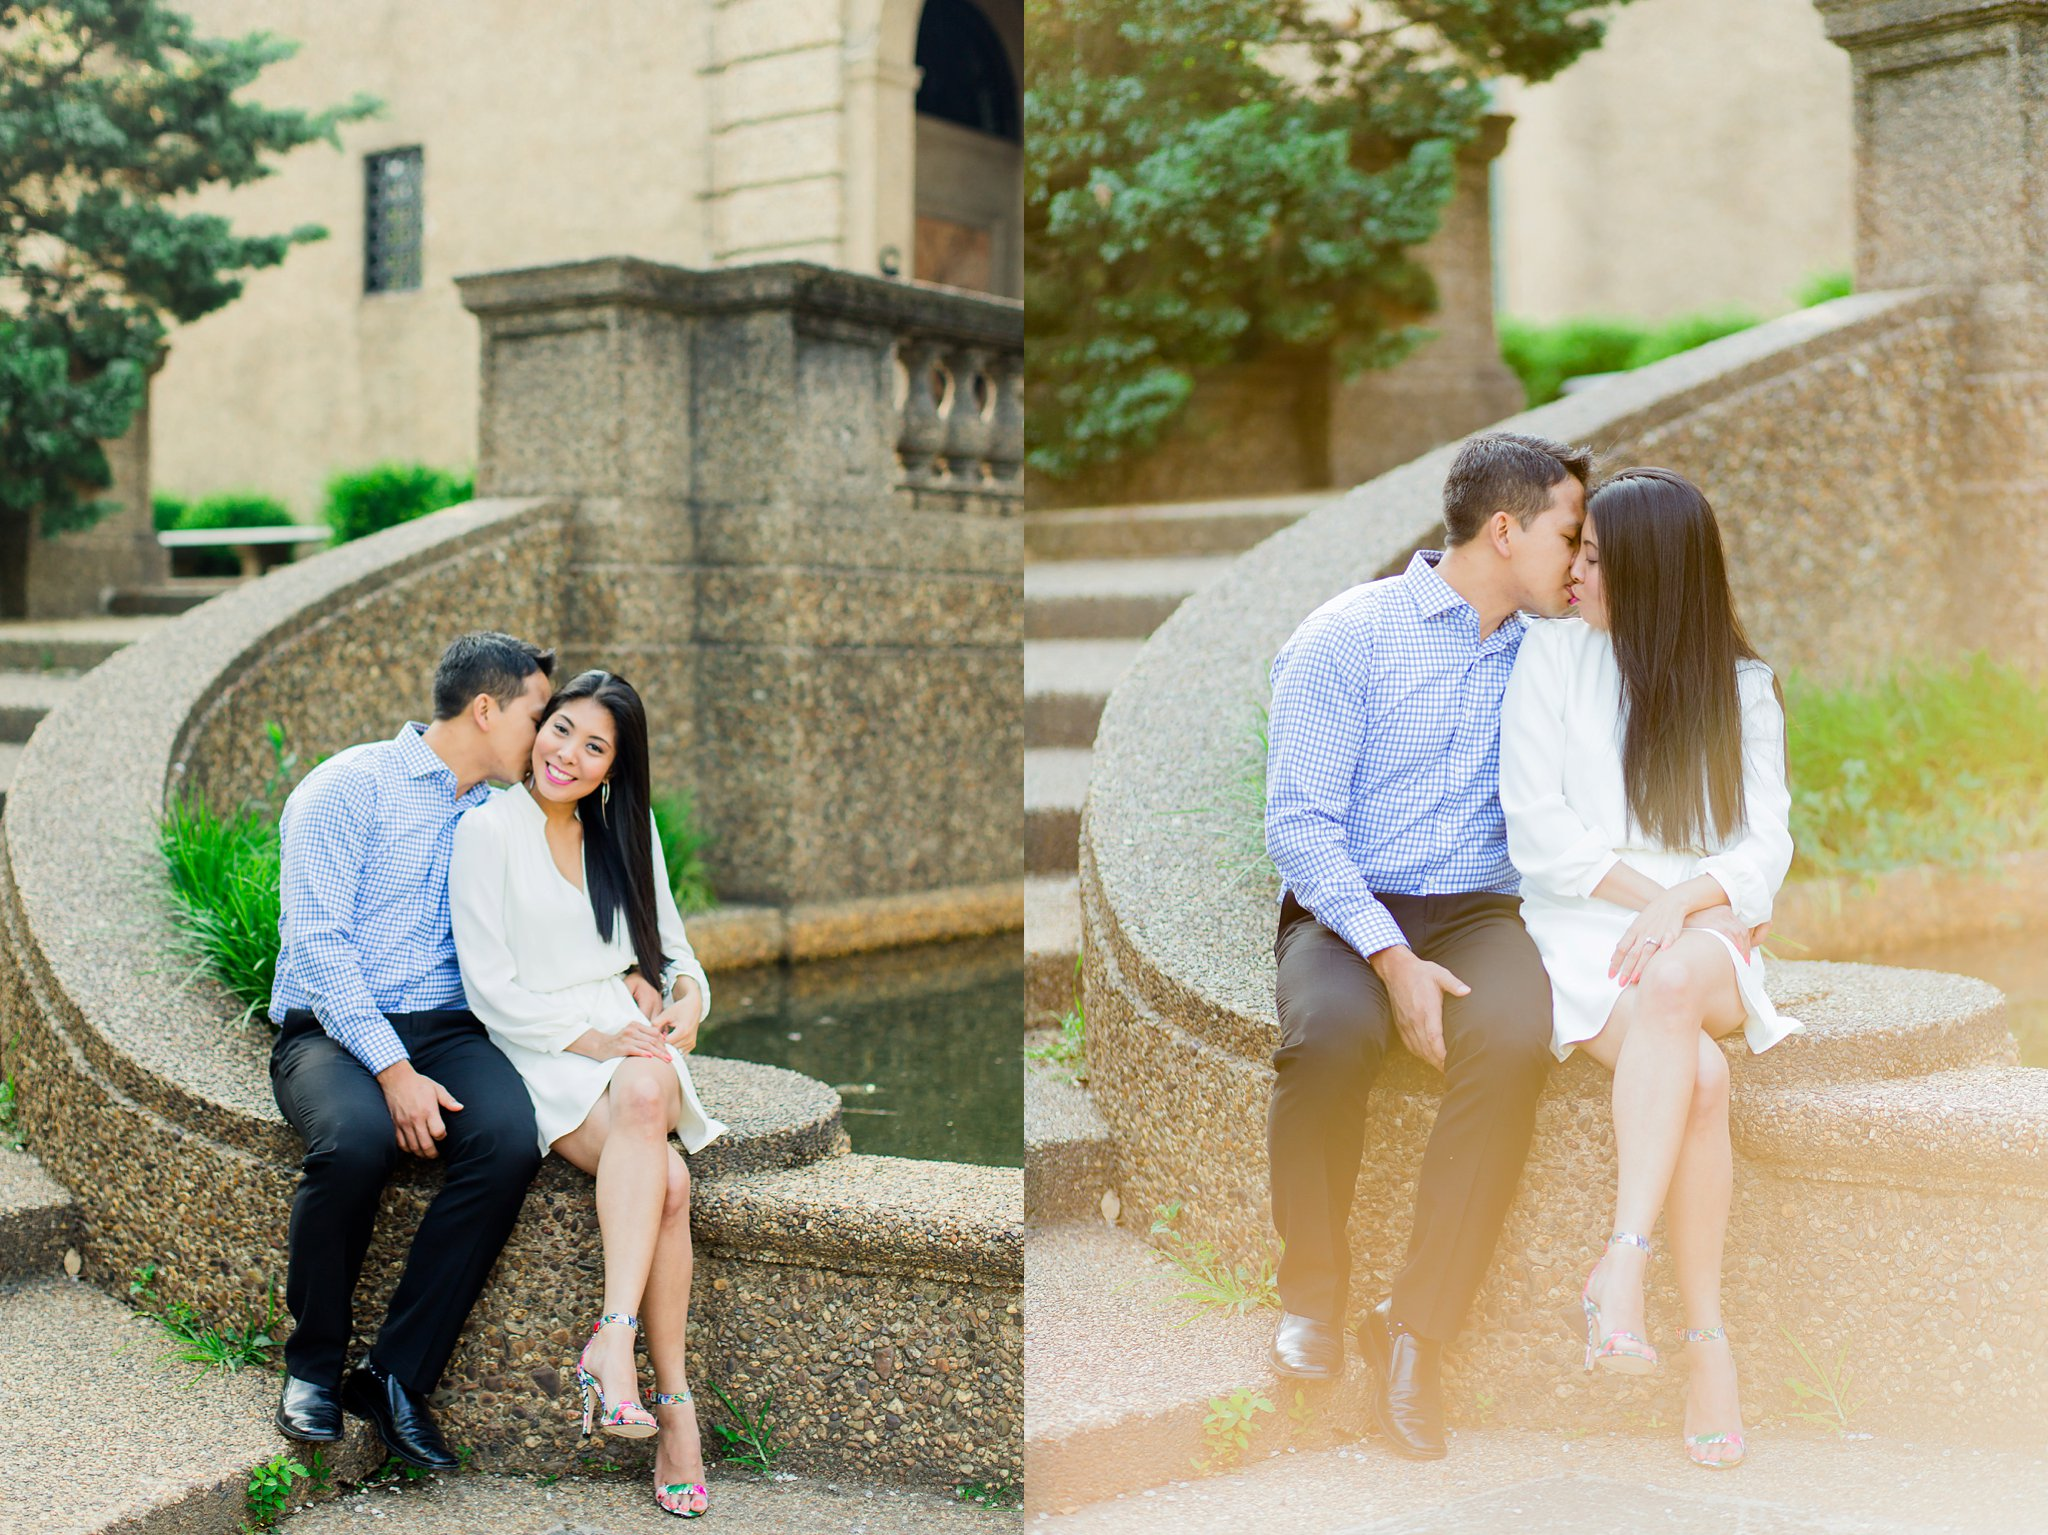 Thin & Phil Meridian Hill Park DC Engagement Photos-12.jpg